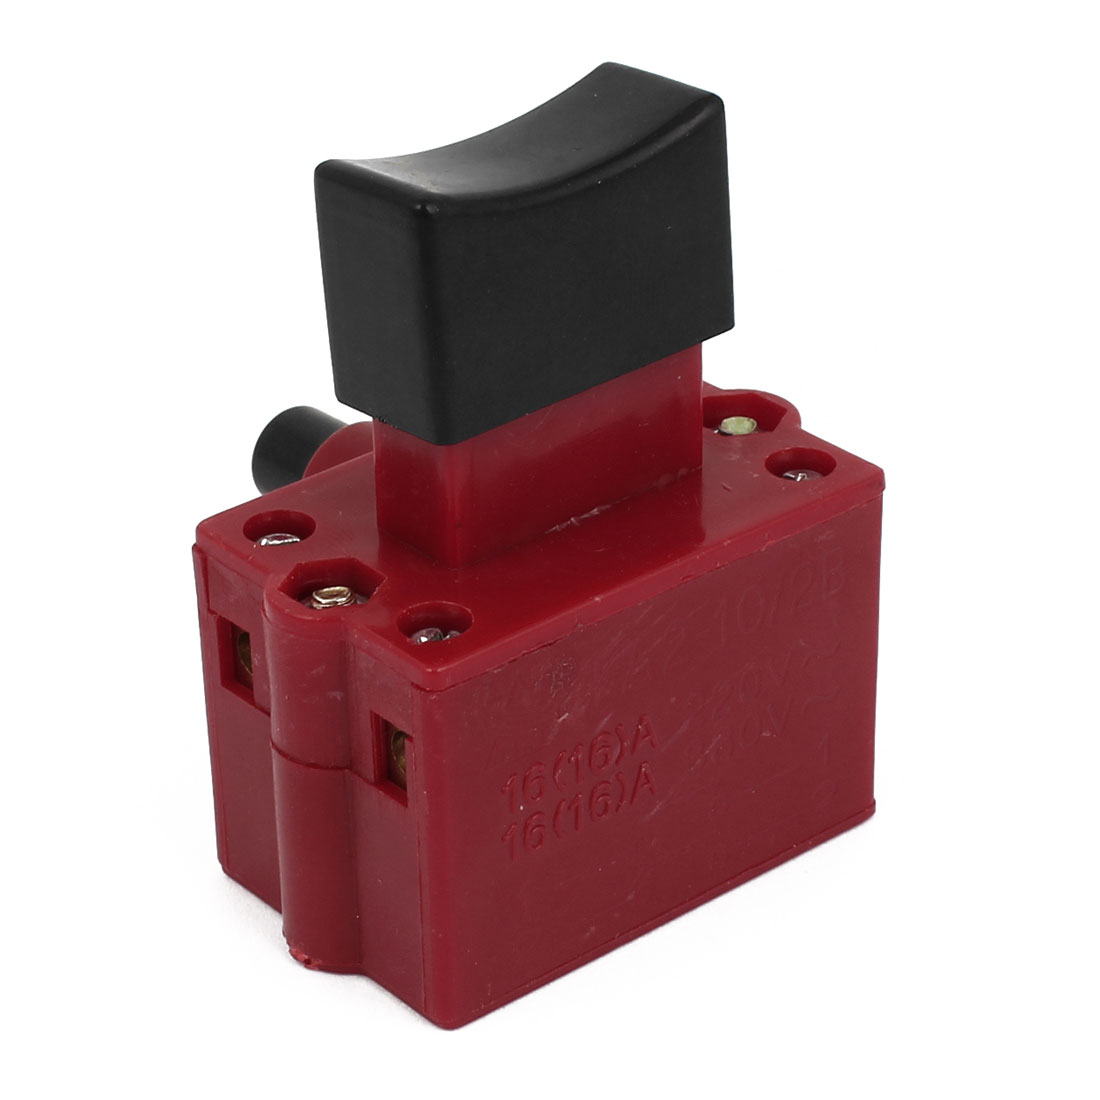 AC 220V/380V 16A NO Momentary Select Locking Electric Tool Trigger Switch